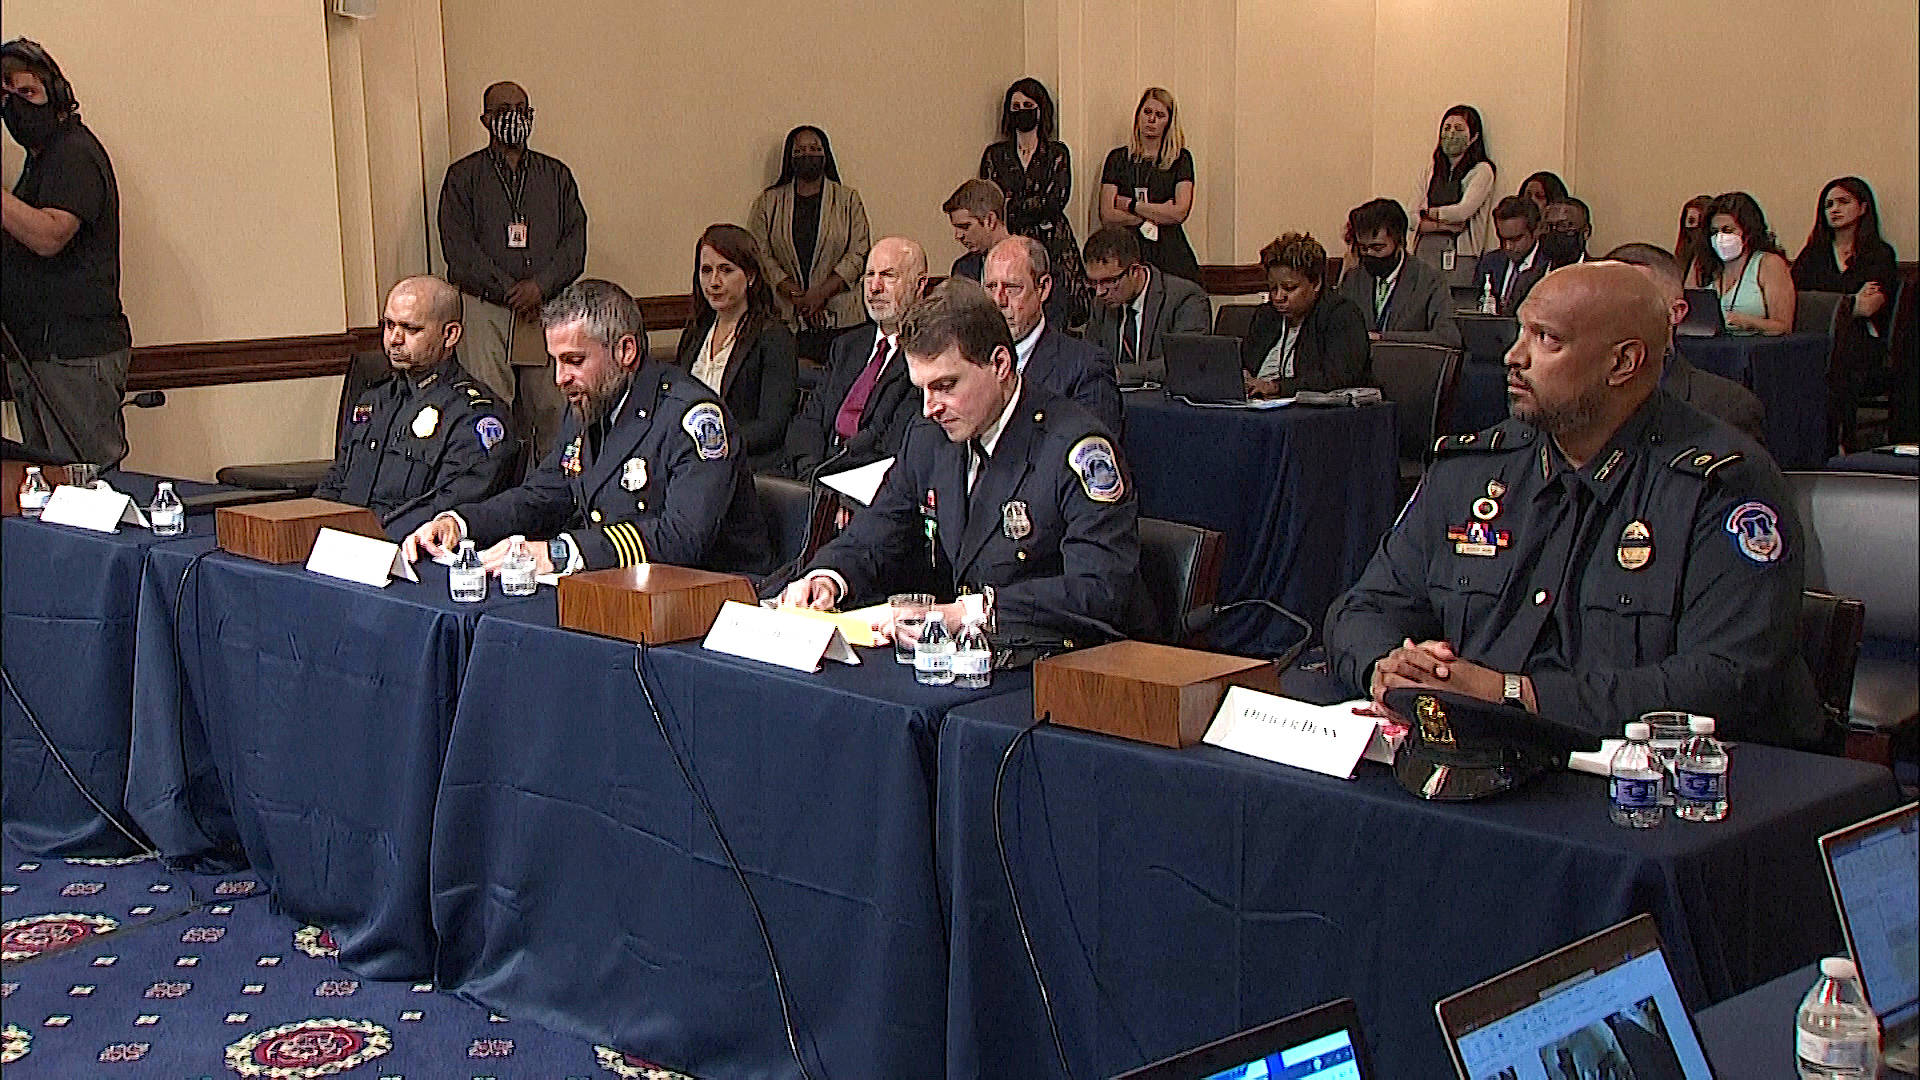 """Read more about the article """"To Hell and Back"""": At Jan. 6 Hearing, Officers Describe Facing Brutal Attacks & Racial Slurs"""